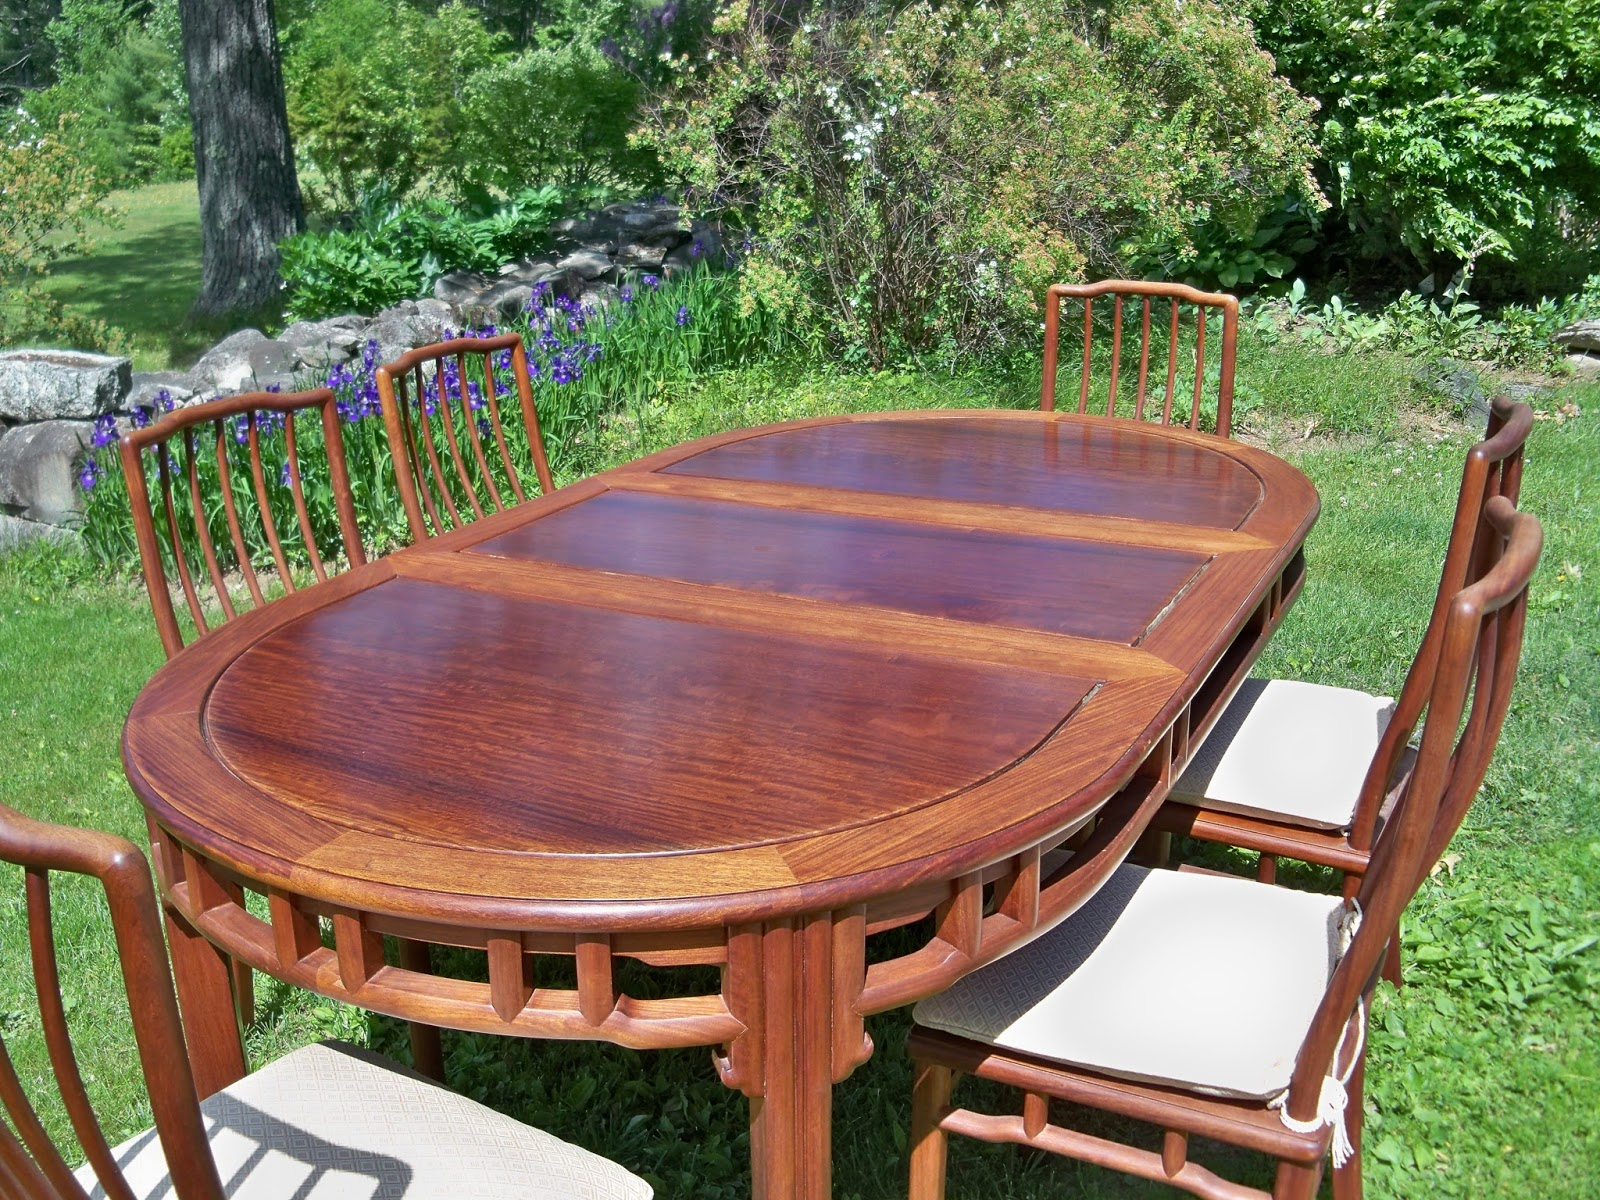 dining table and chairs hong kong outdoor stackable vintage rosewood six from goshen oval with a 20 removable leaf to have round 30 h x 44 width in center pads